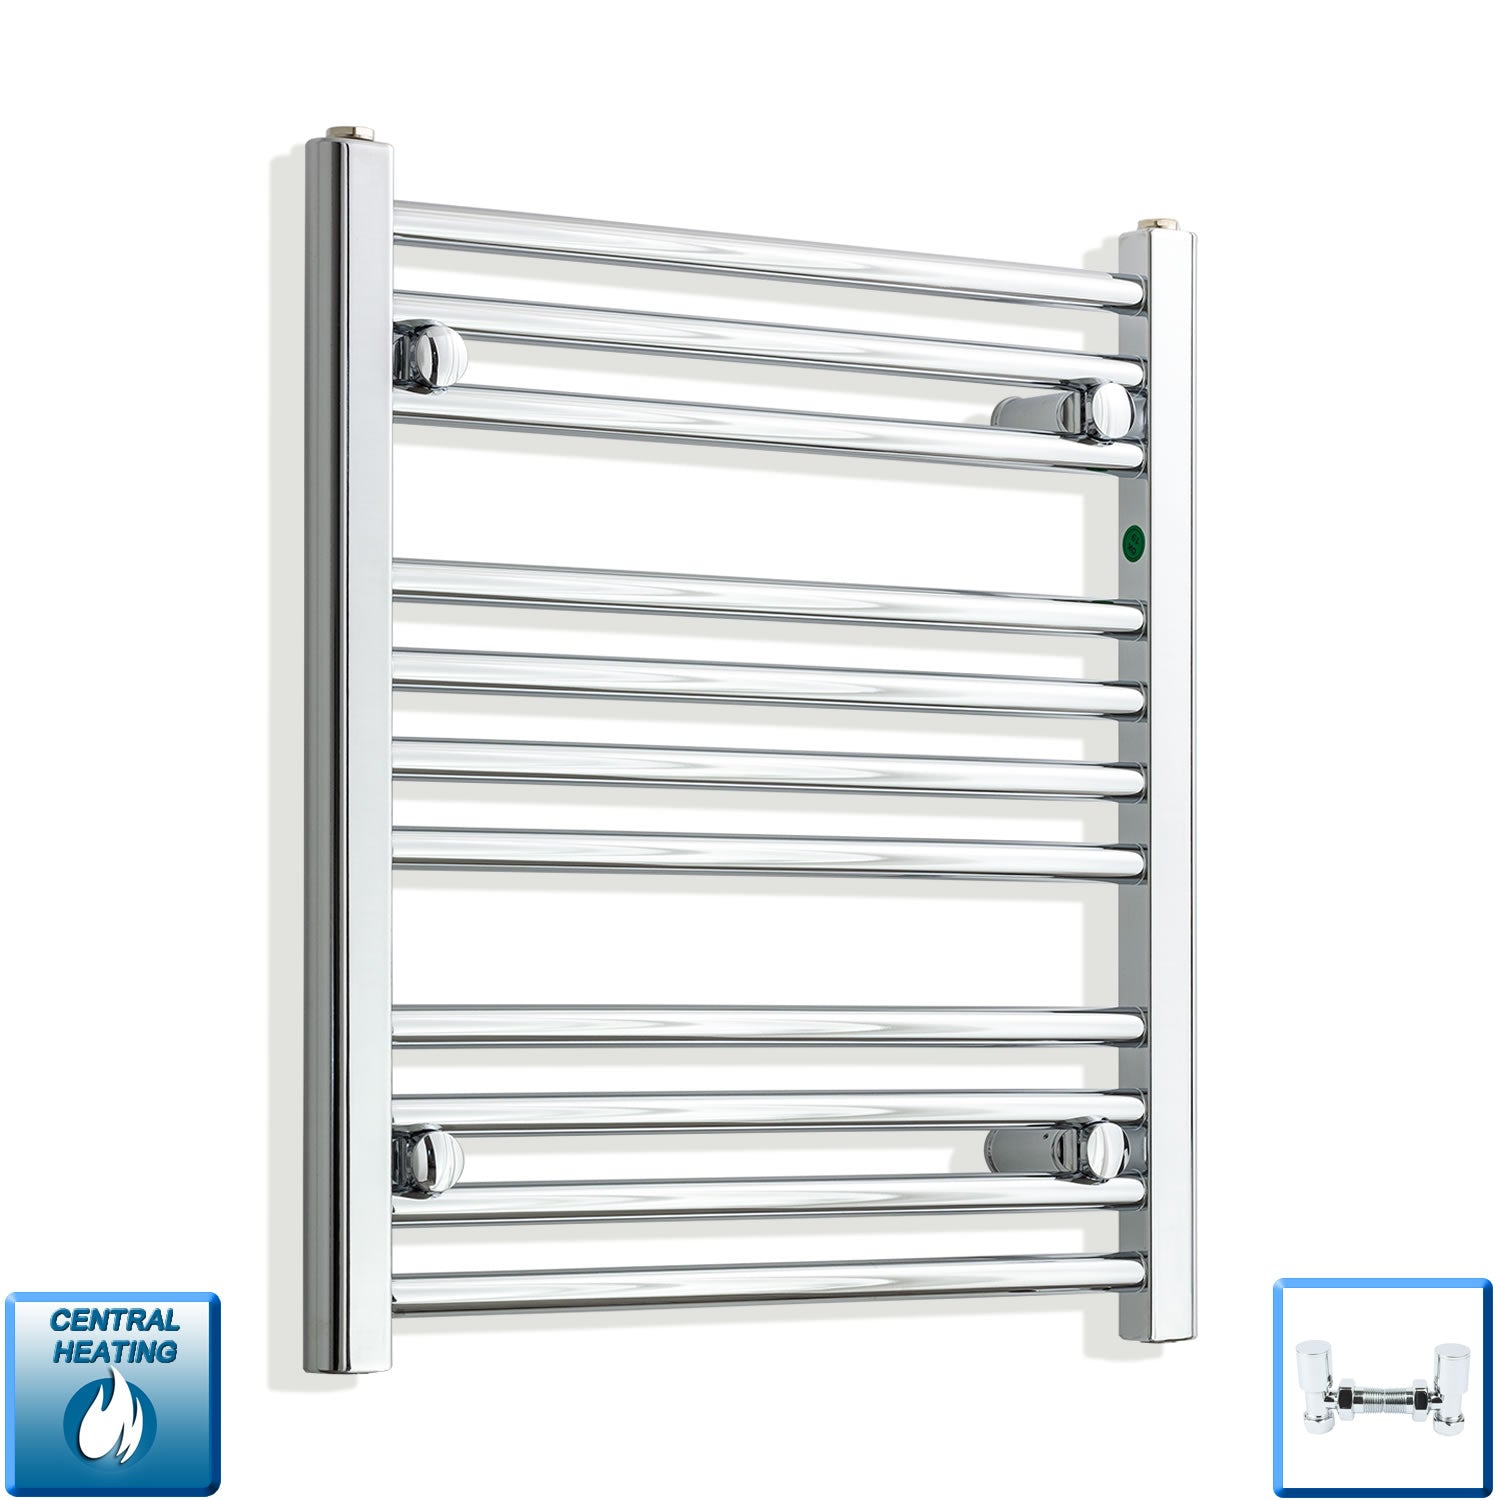 550mm Wide 600mm High Chrome Towel Rail Radiator With Angled Valve